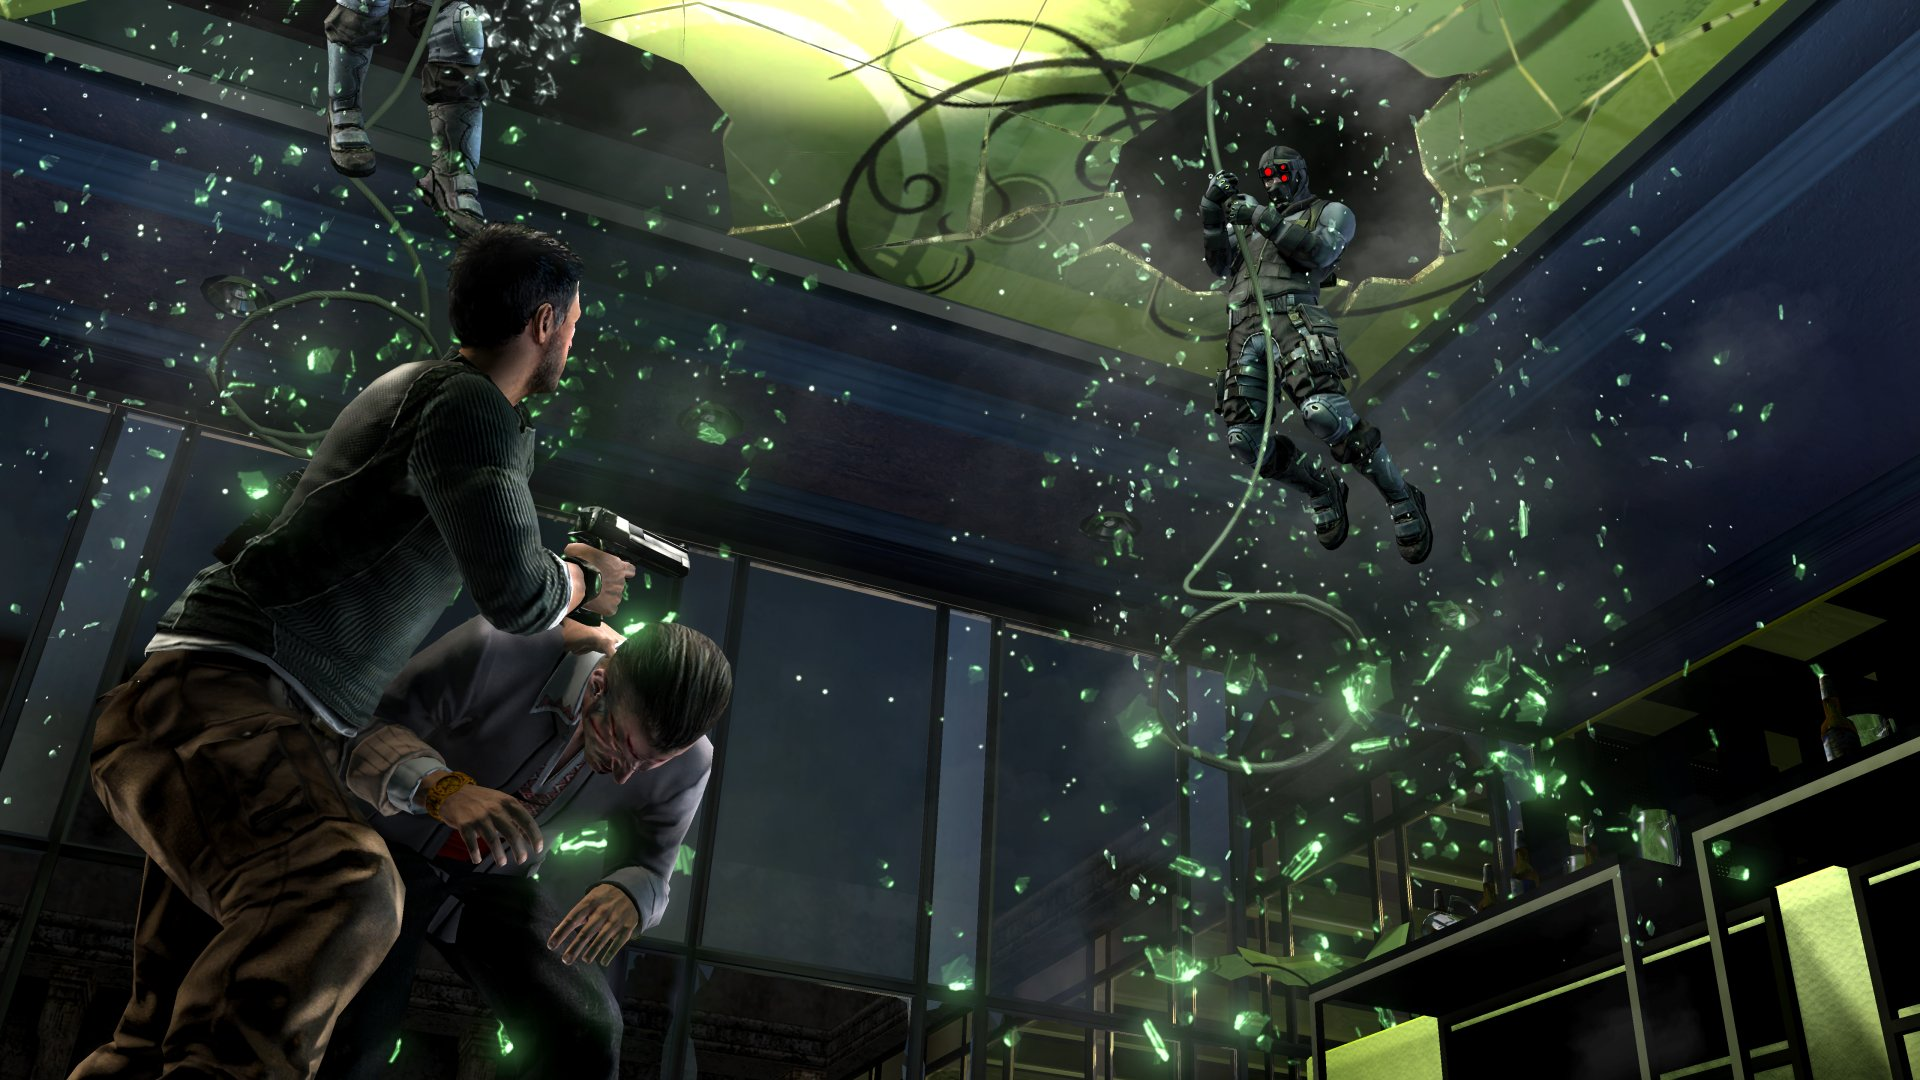 Splinter Cell Conviction